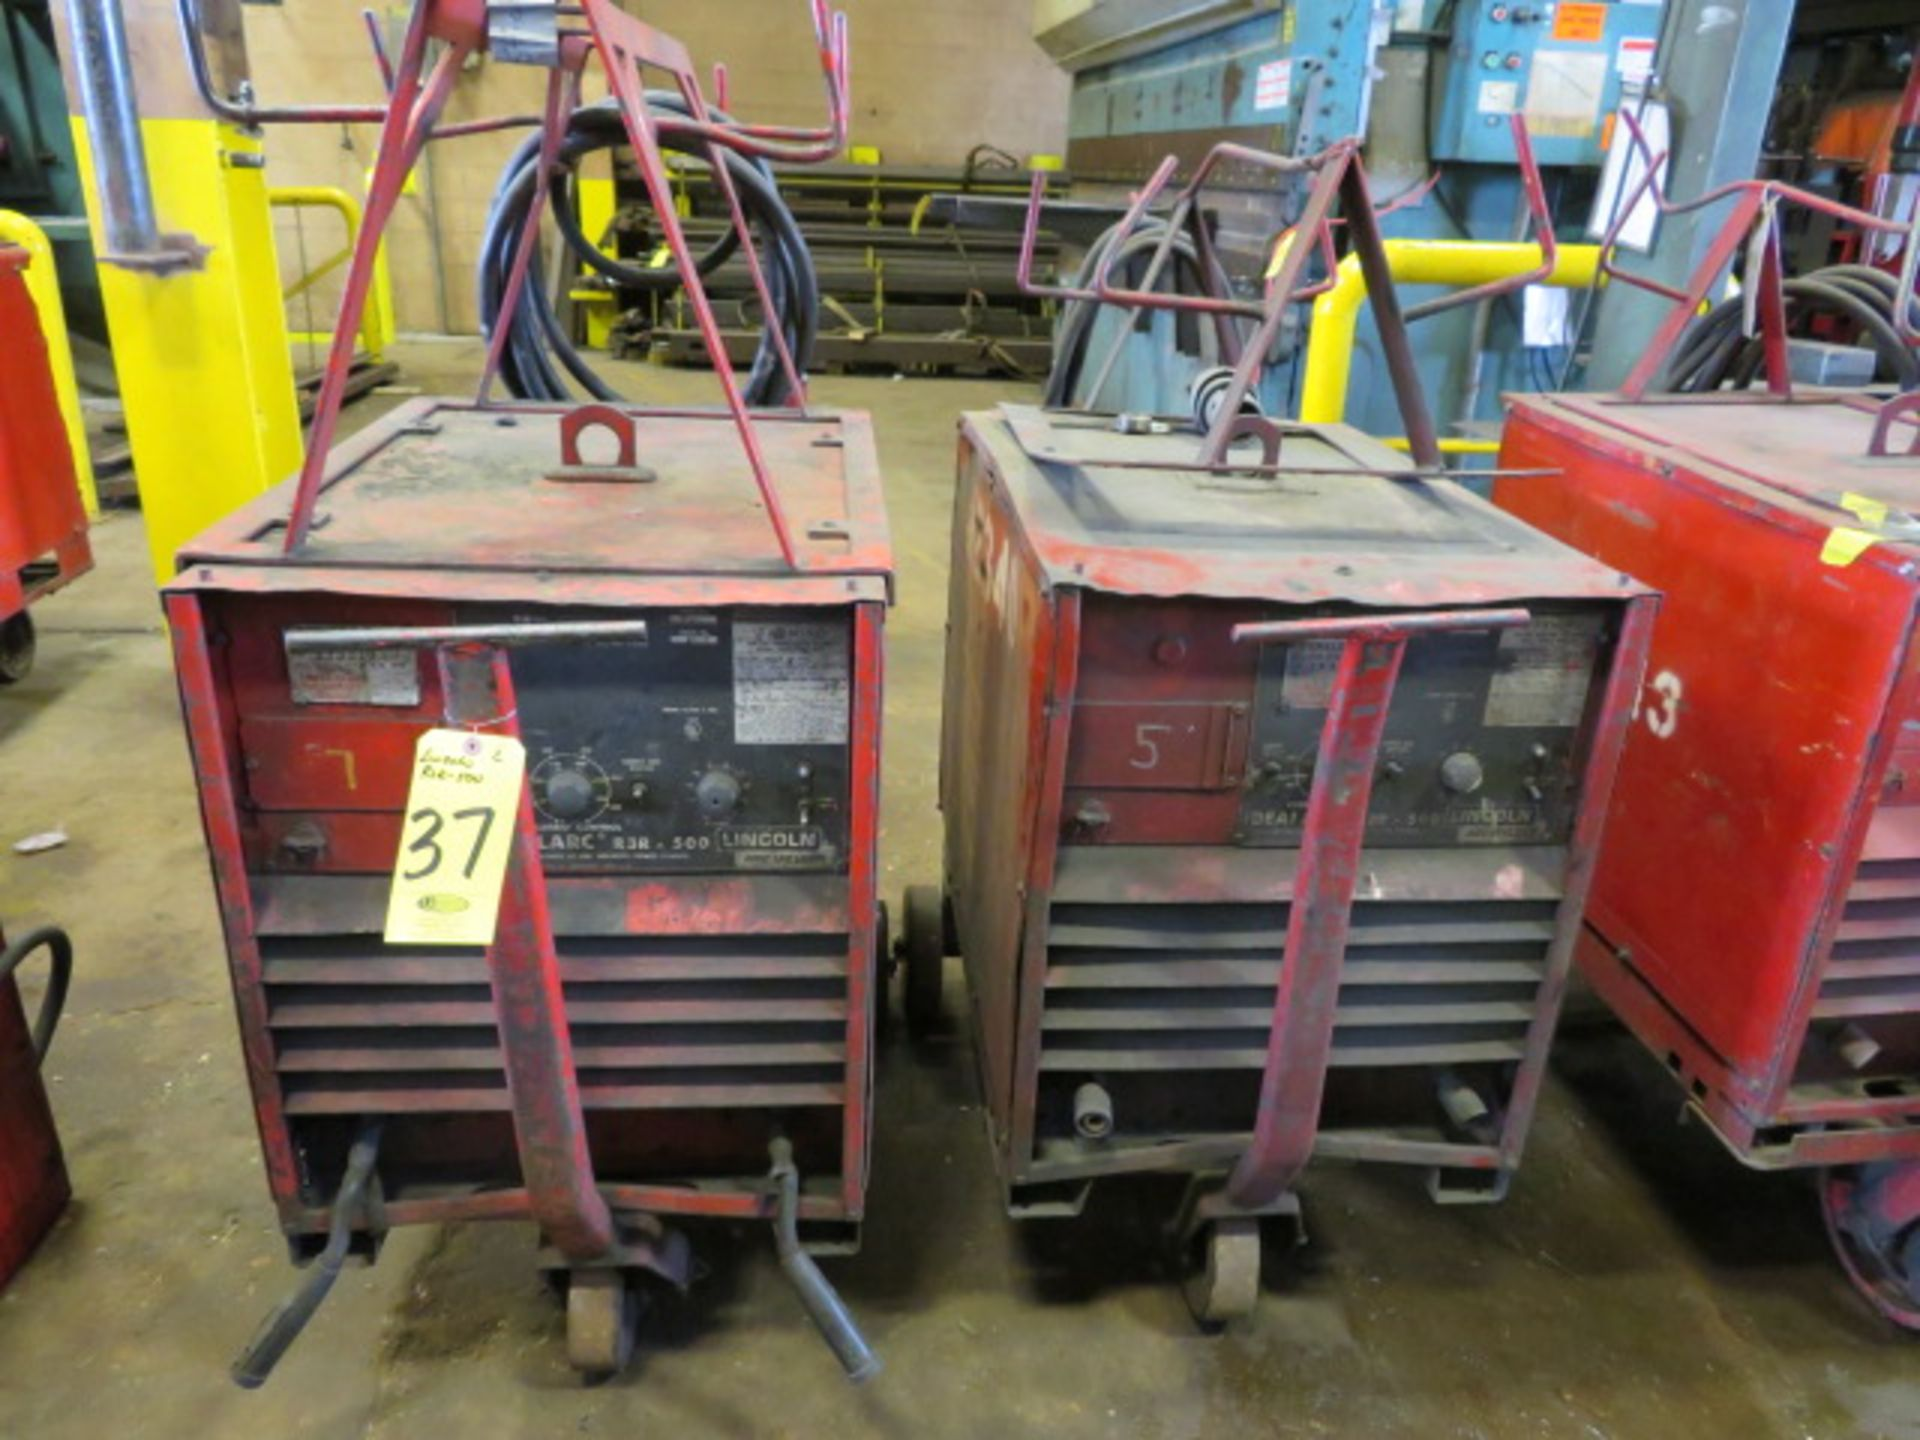 Lot 37 - (2) LINCOLN IDEALARC R3R-500 TIG WELDERS W/CARTS